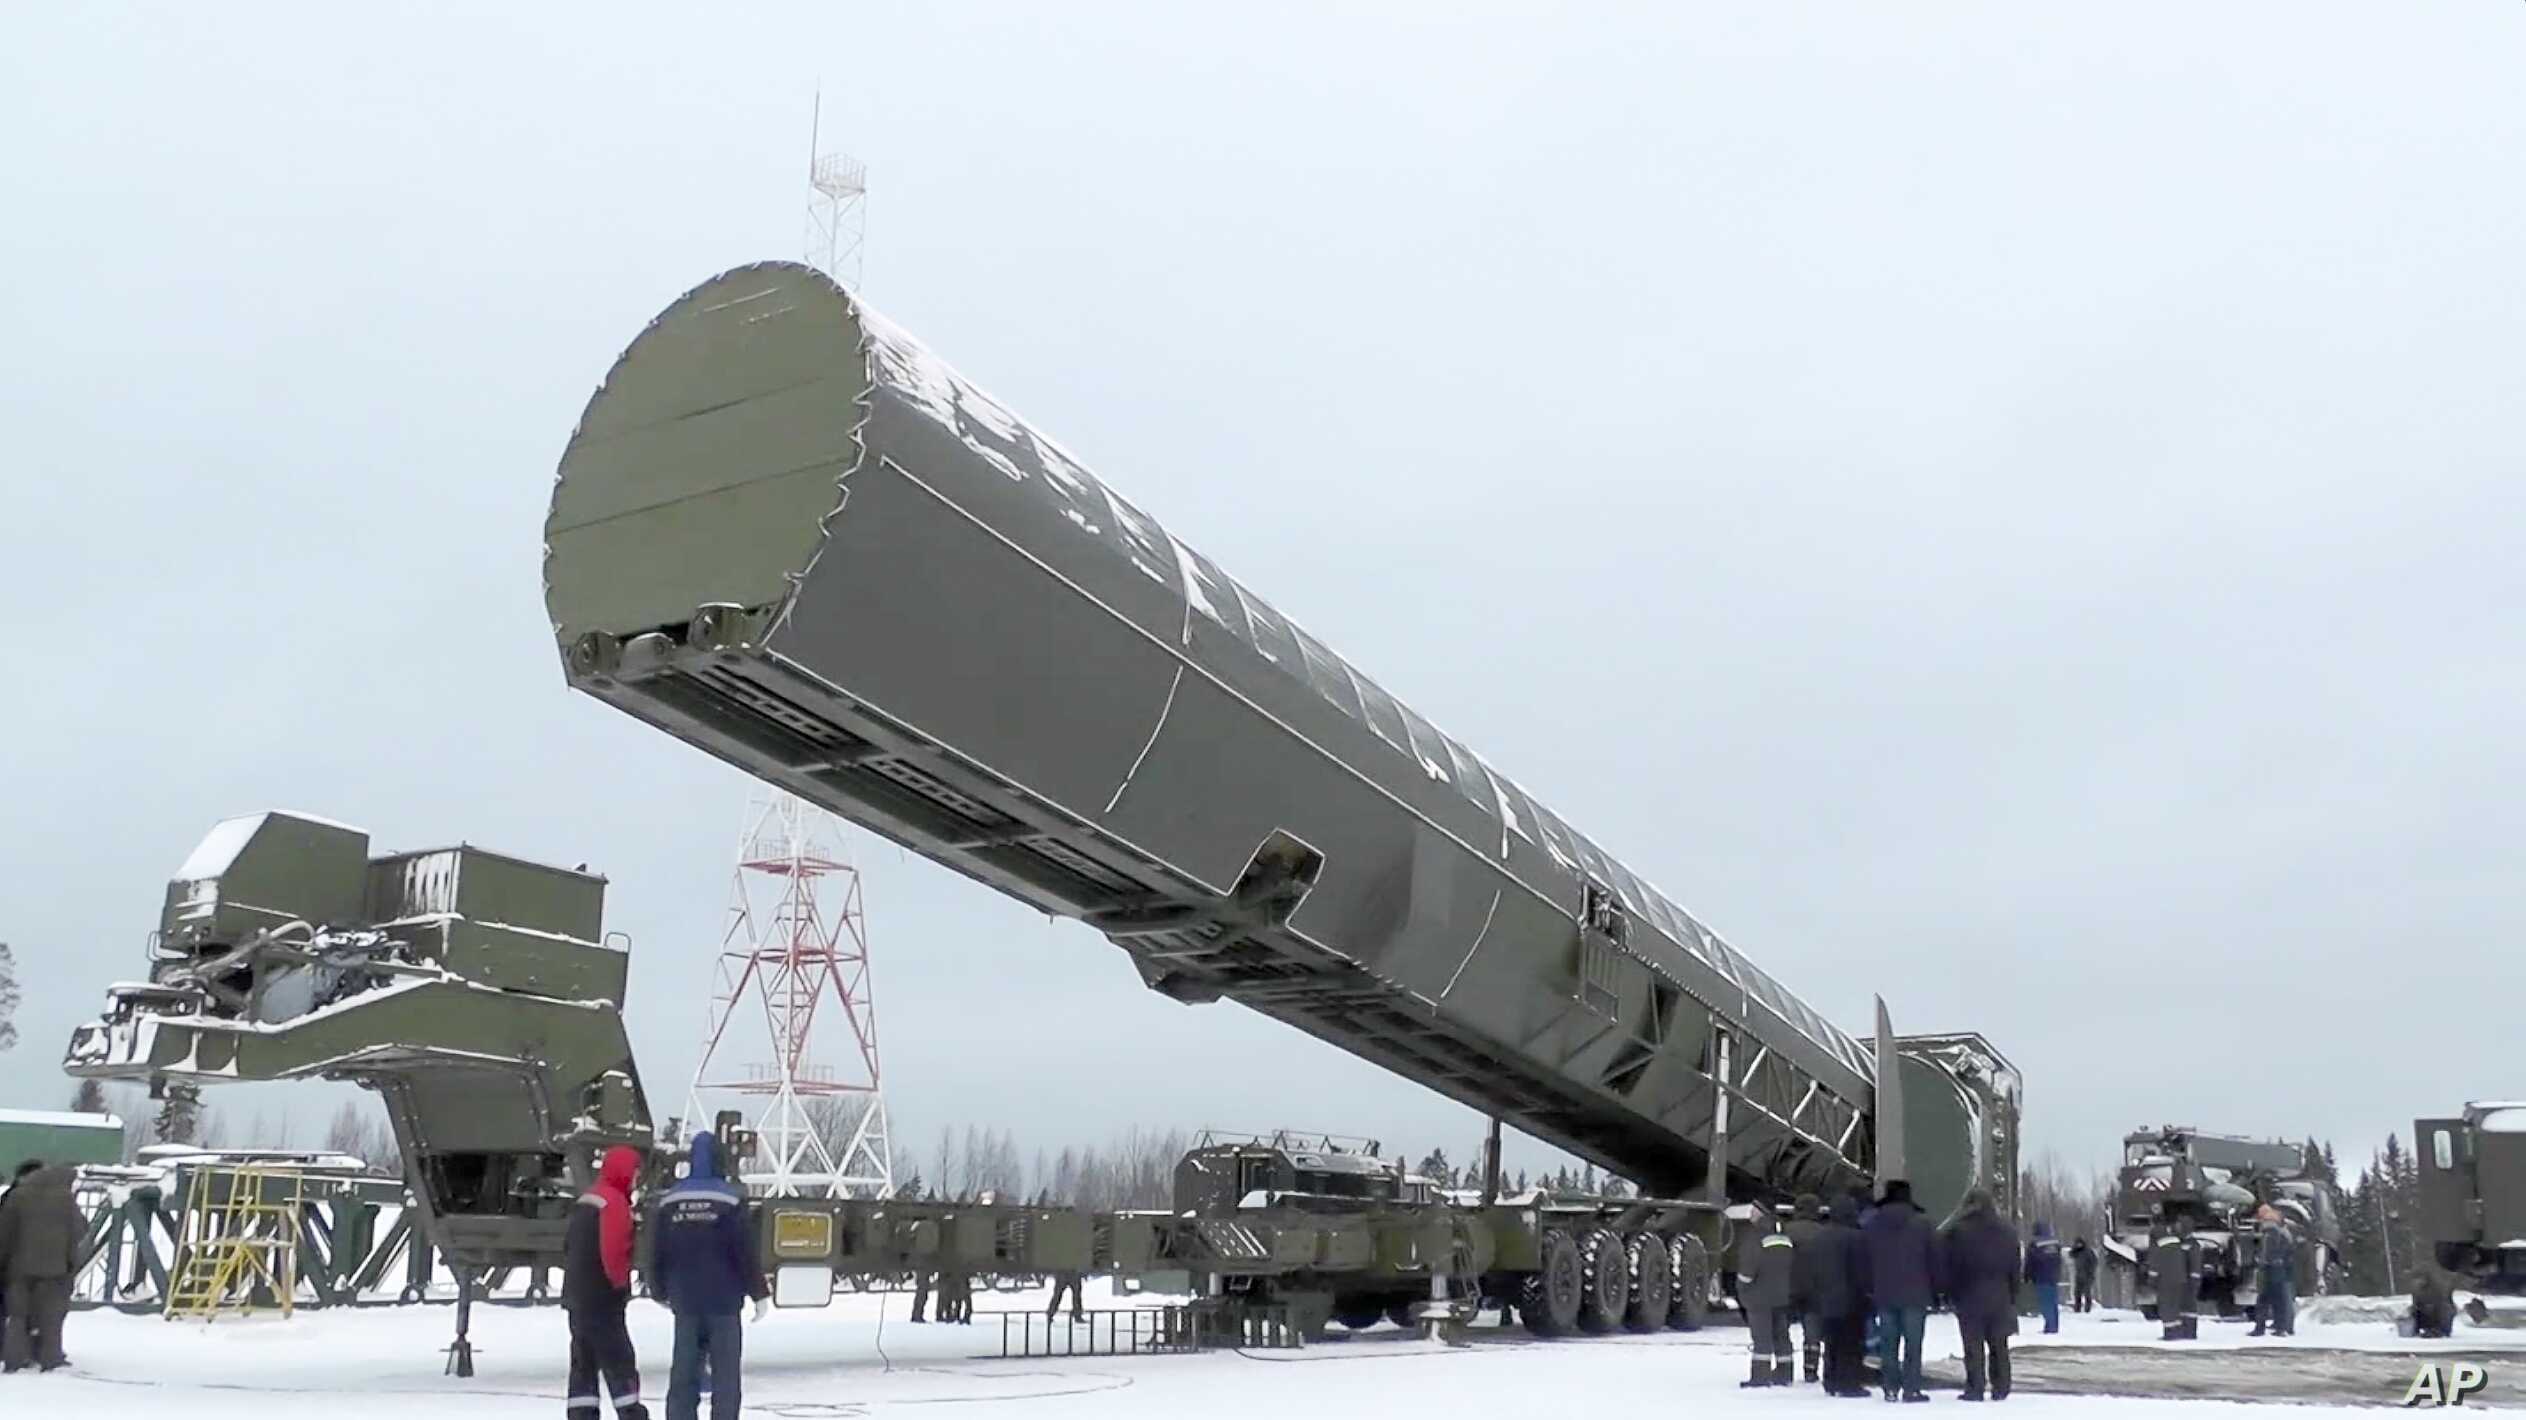 Russia Conducts Another Test of ICBM Sarmat | Voice of America - English